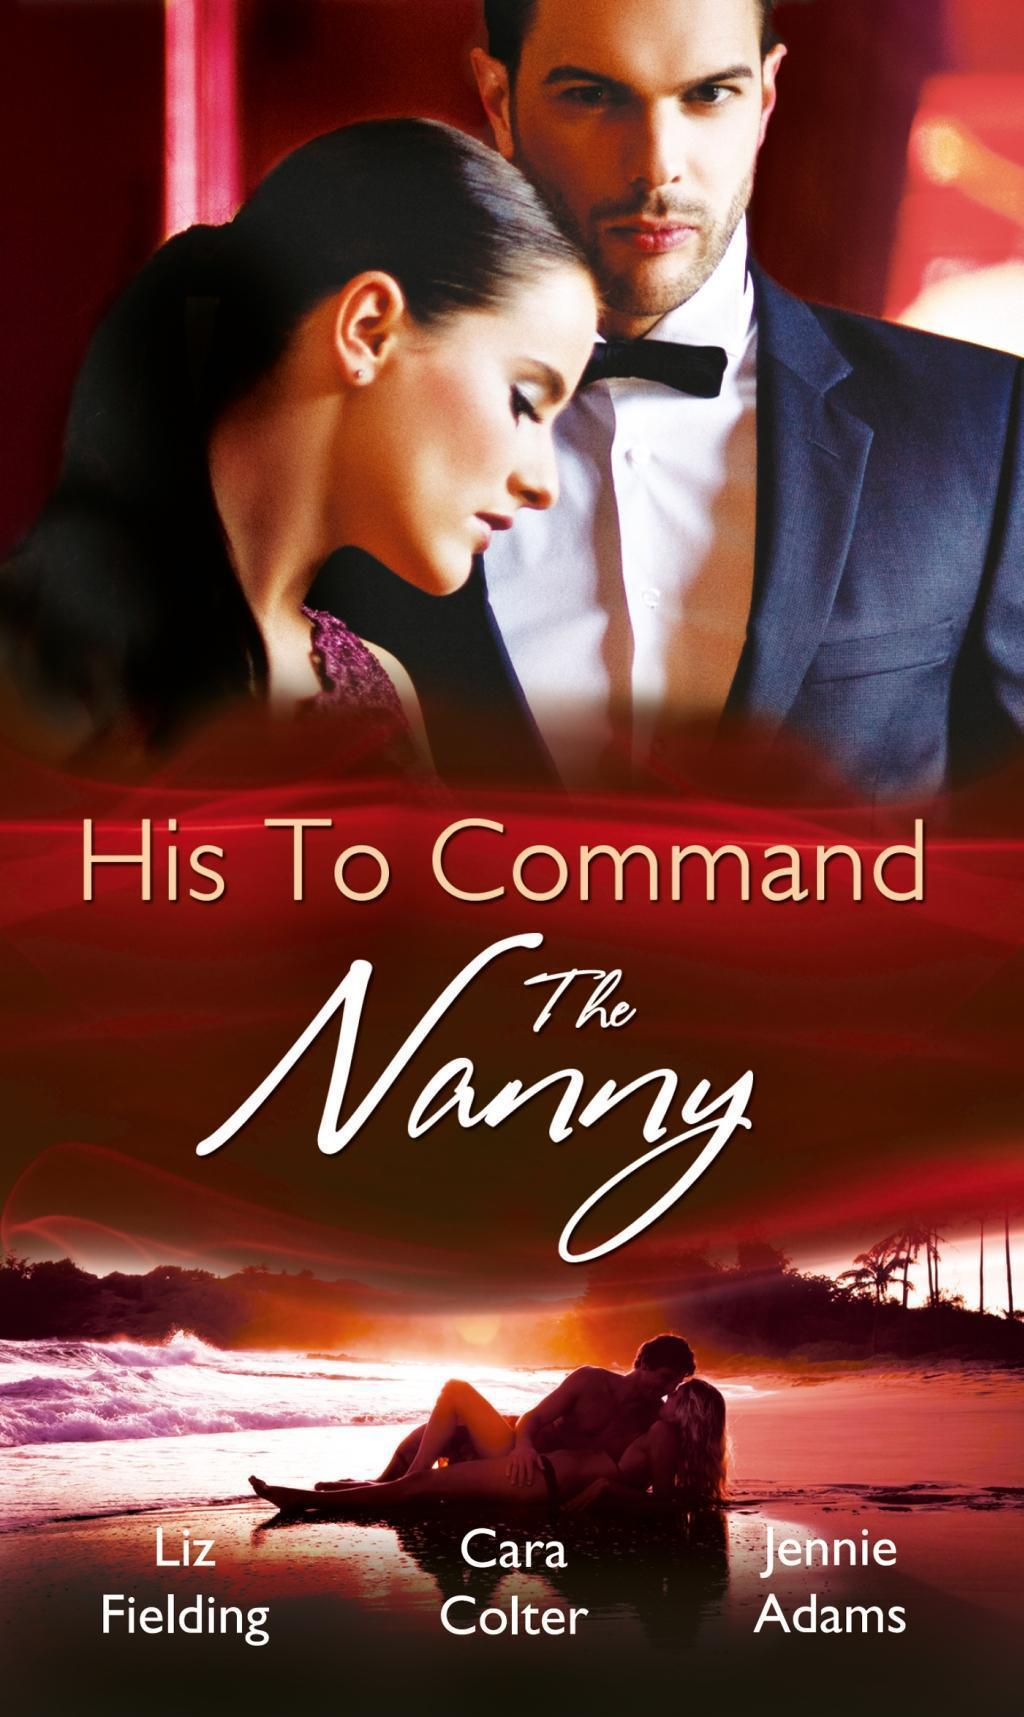 His to Command: the Nanny: A Nanny for Keeps / The Prince and the Nanny / Parents of Convenience (Mills & Boon M&B) (Heart to Heart, Book 5)